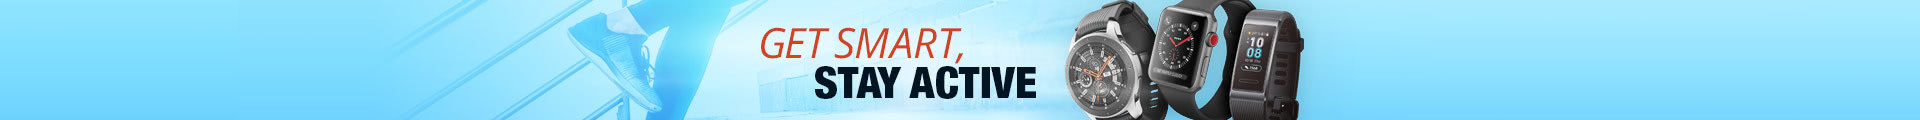 Get Smart, Stay Active